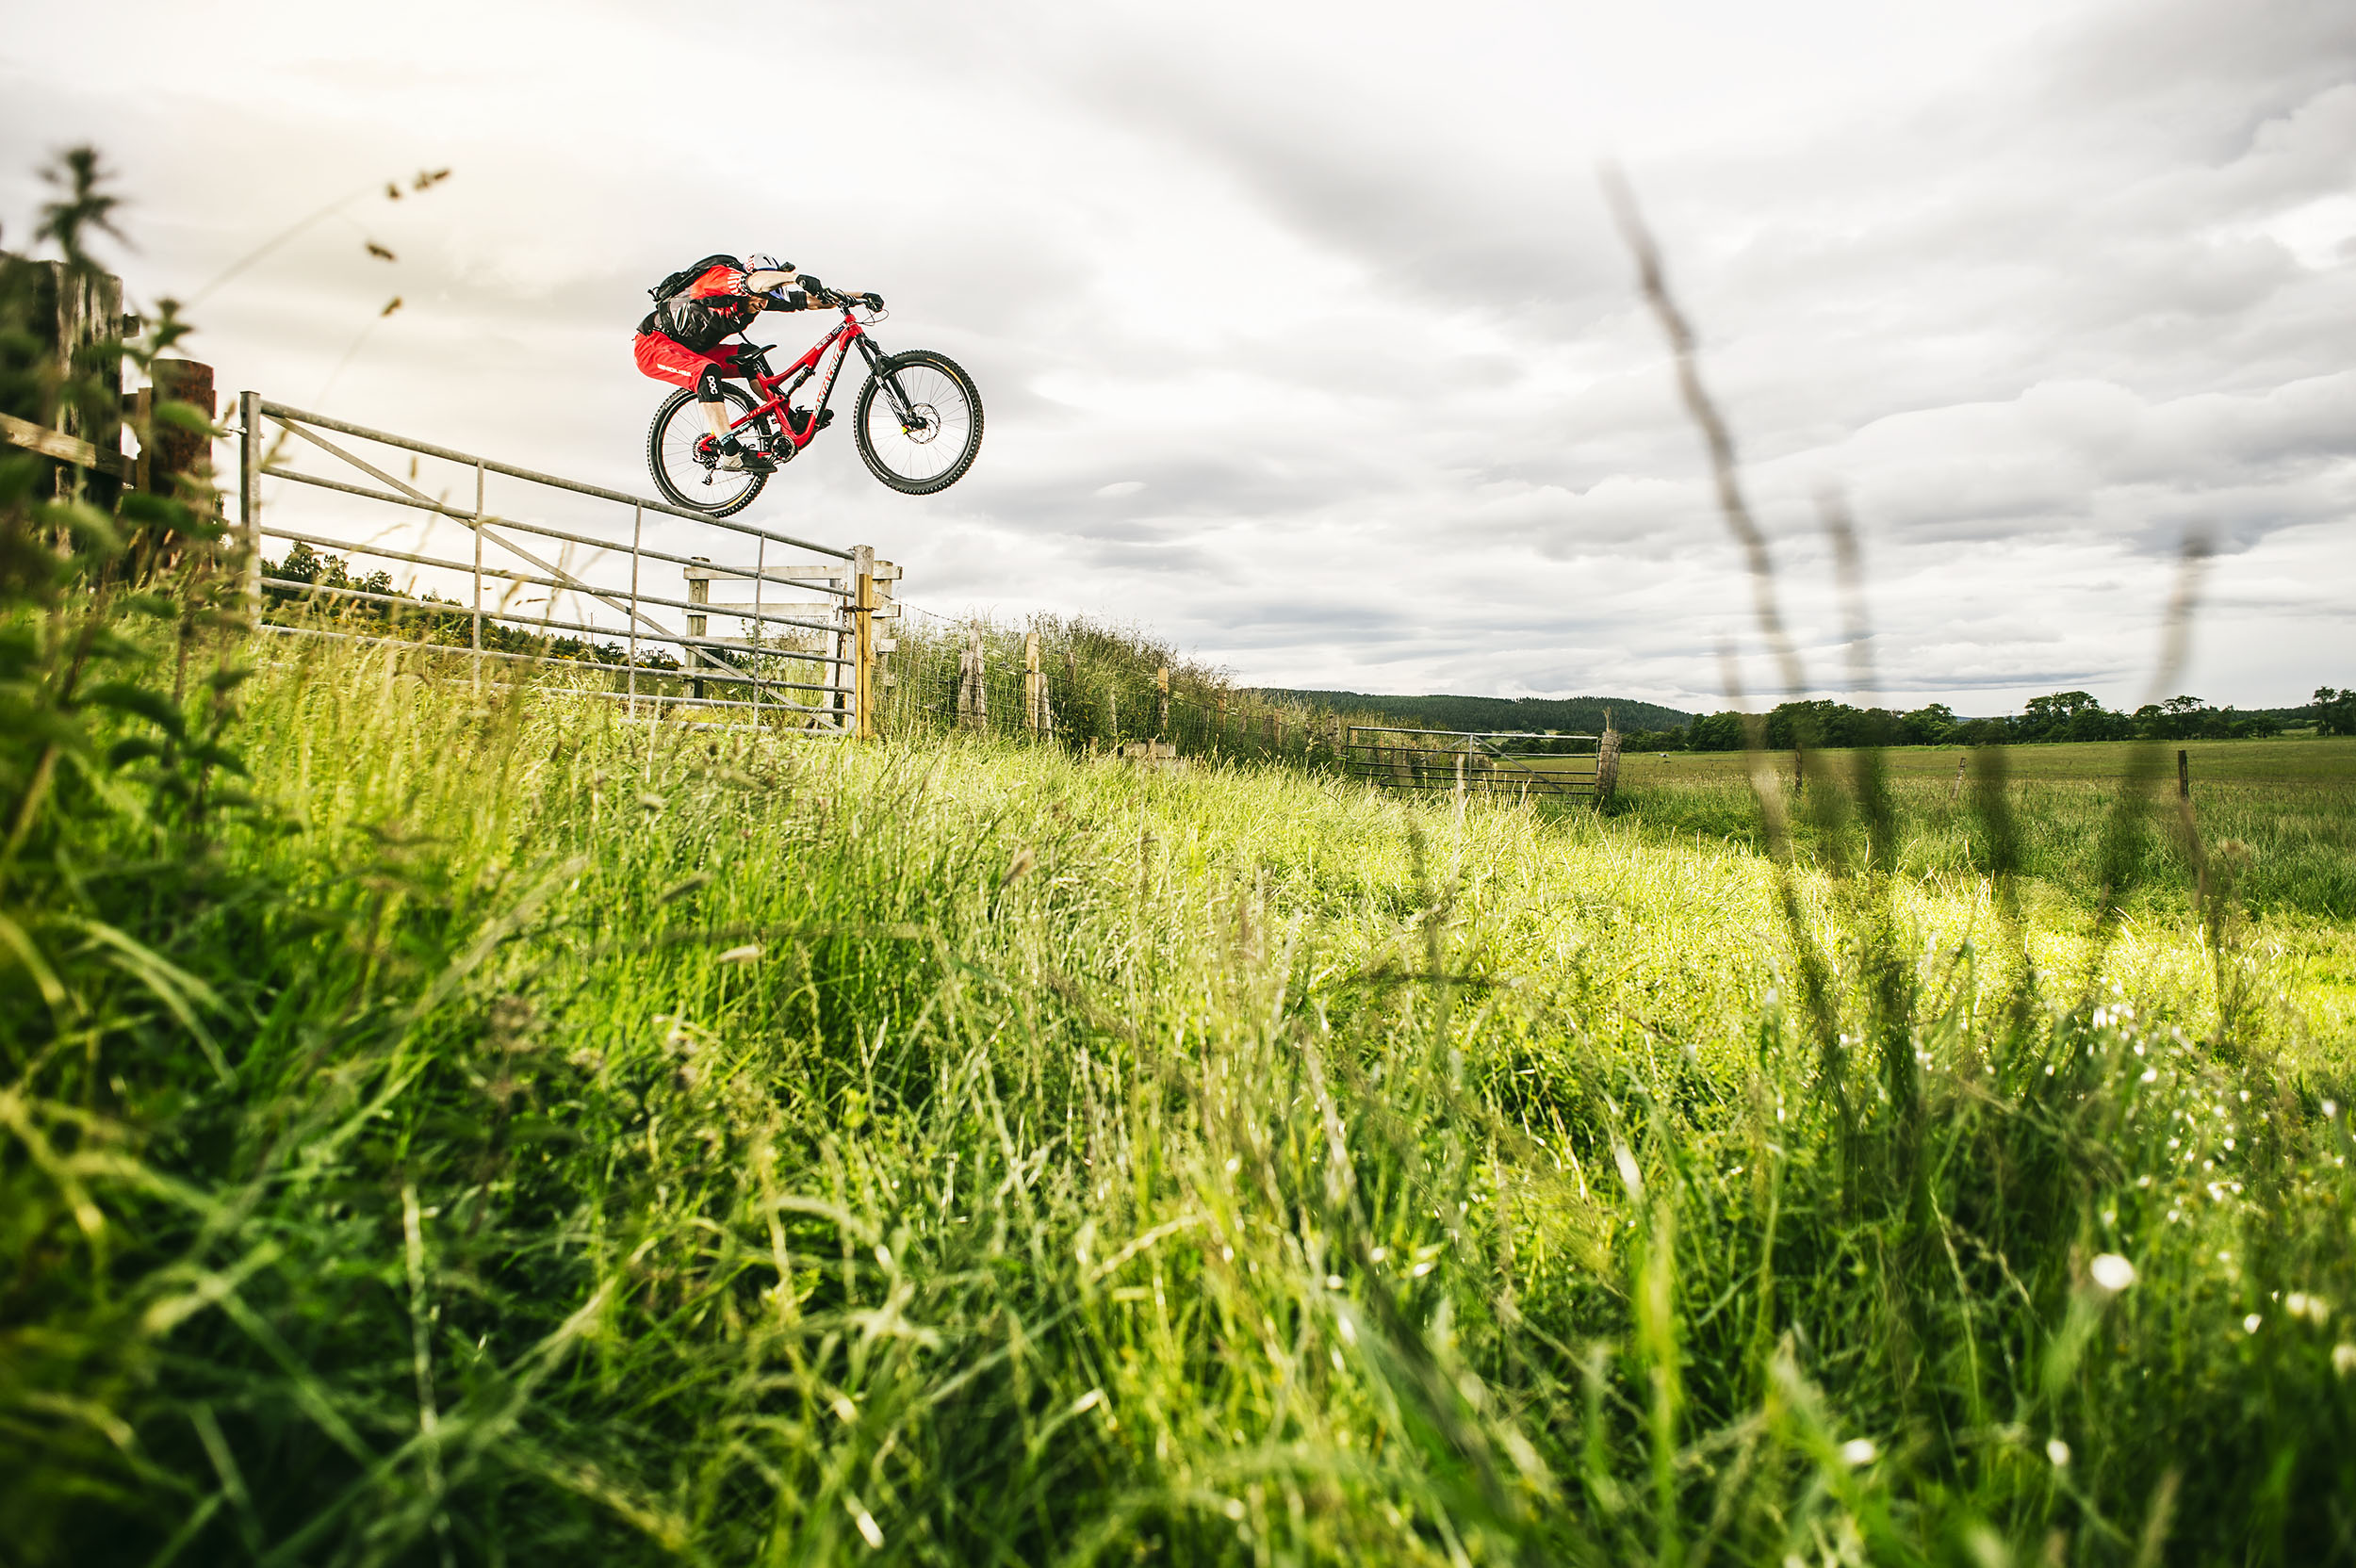 danny_macaskill_03_by_fred-murray_red-bull-content-pool